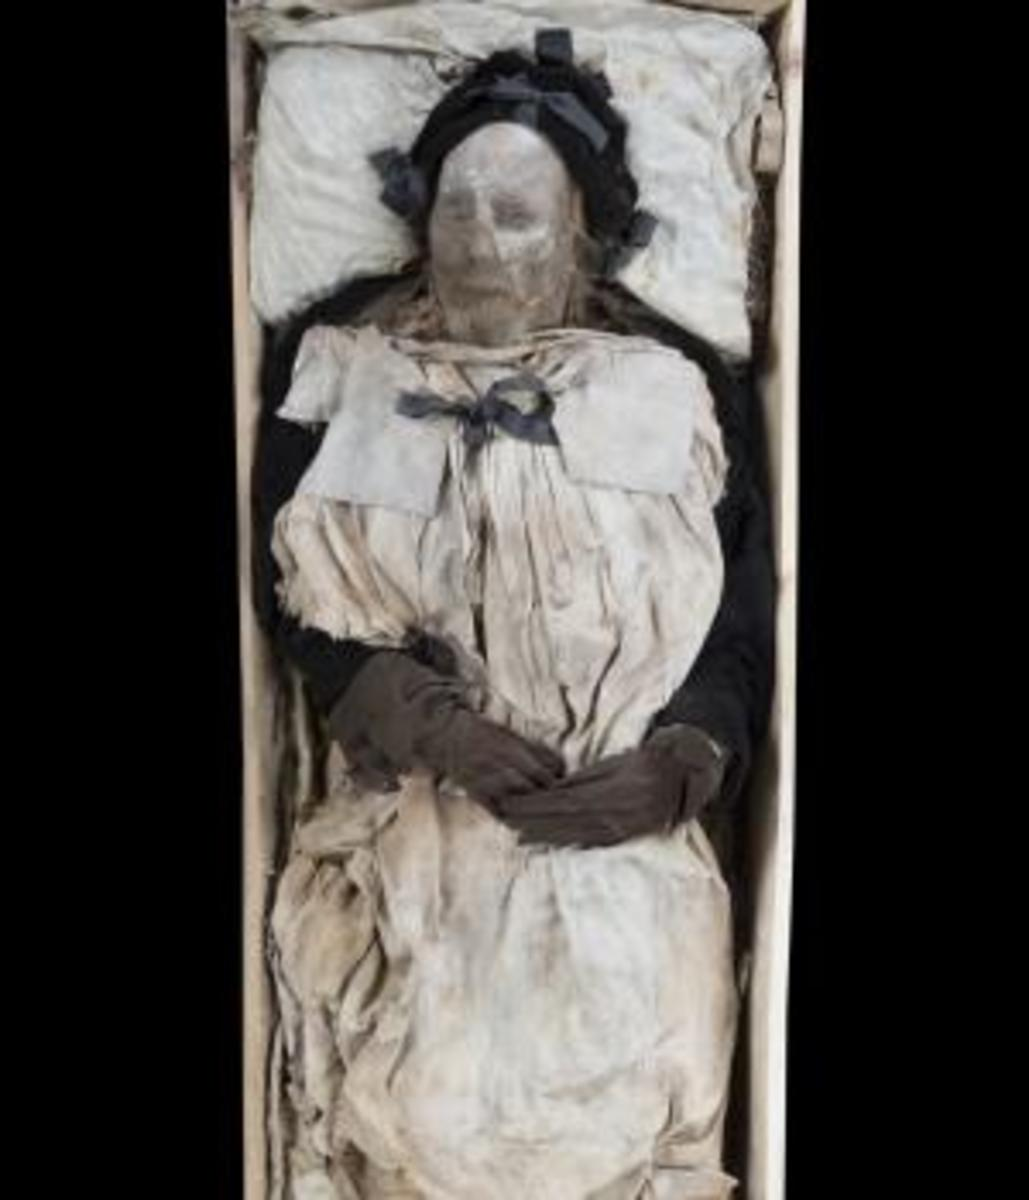 sweden, bishop, mummy